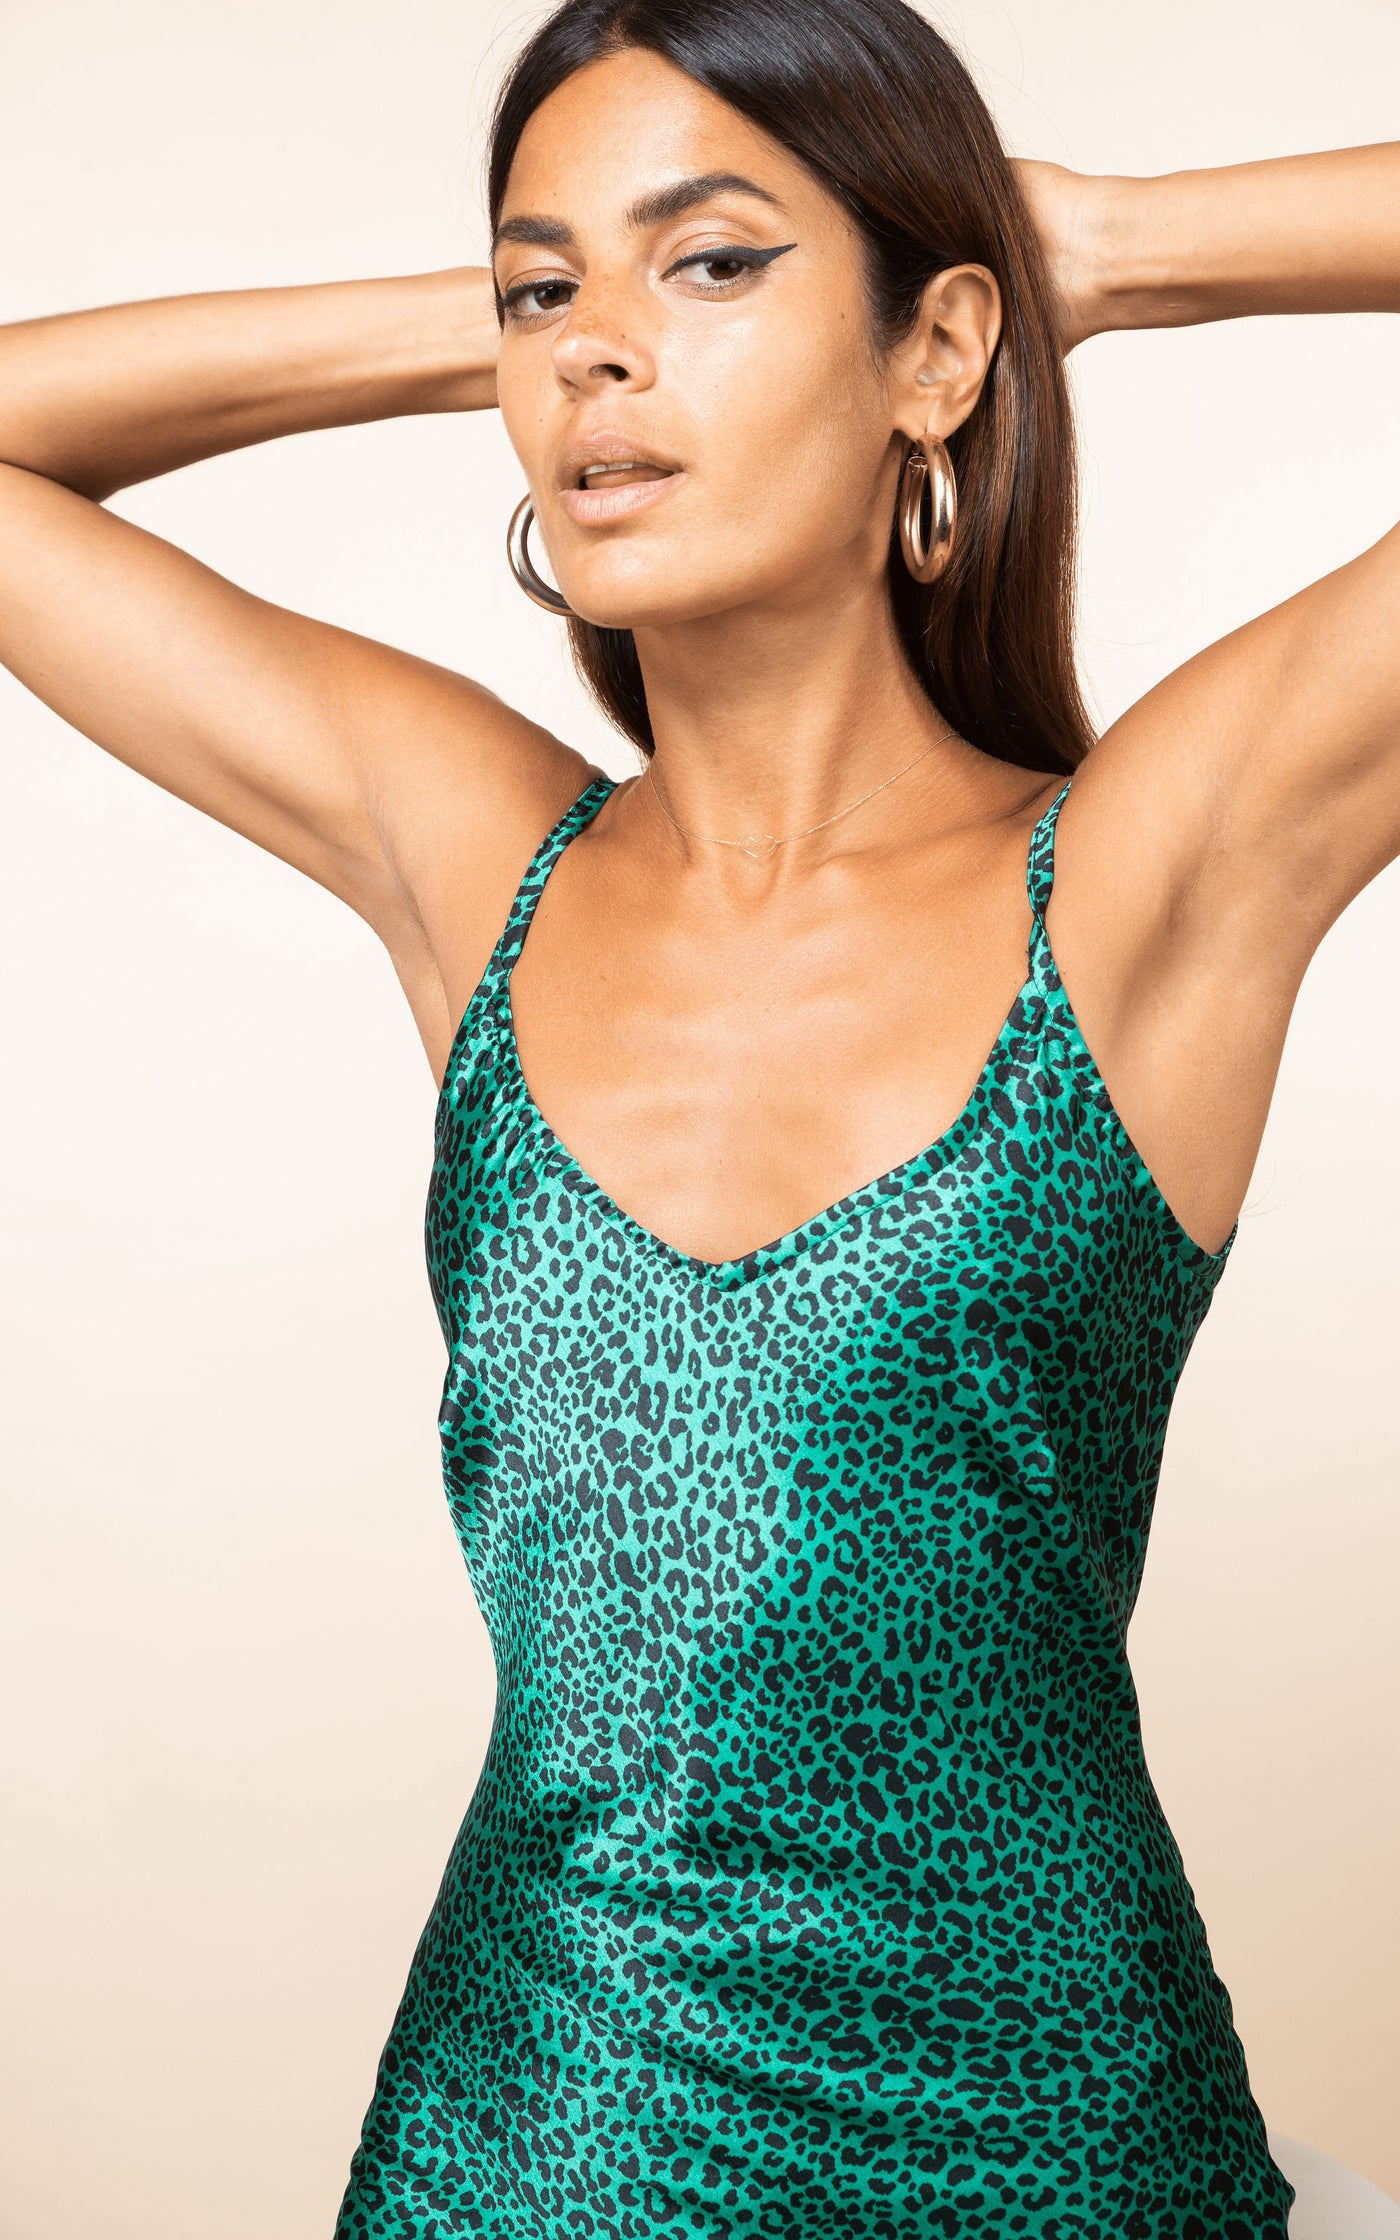 Dancing Leopard faces forward with arms behind head wearing Paloma Maxi Slip Dress in leopard print